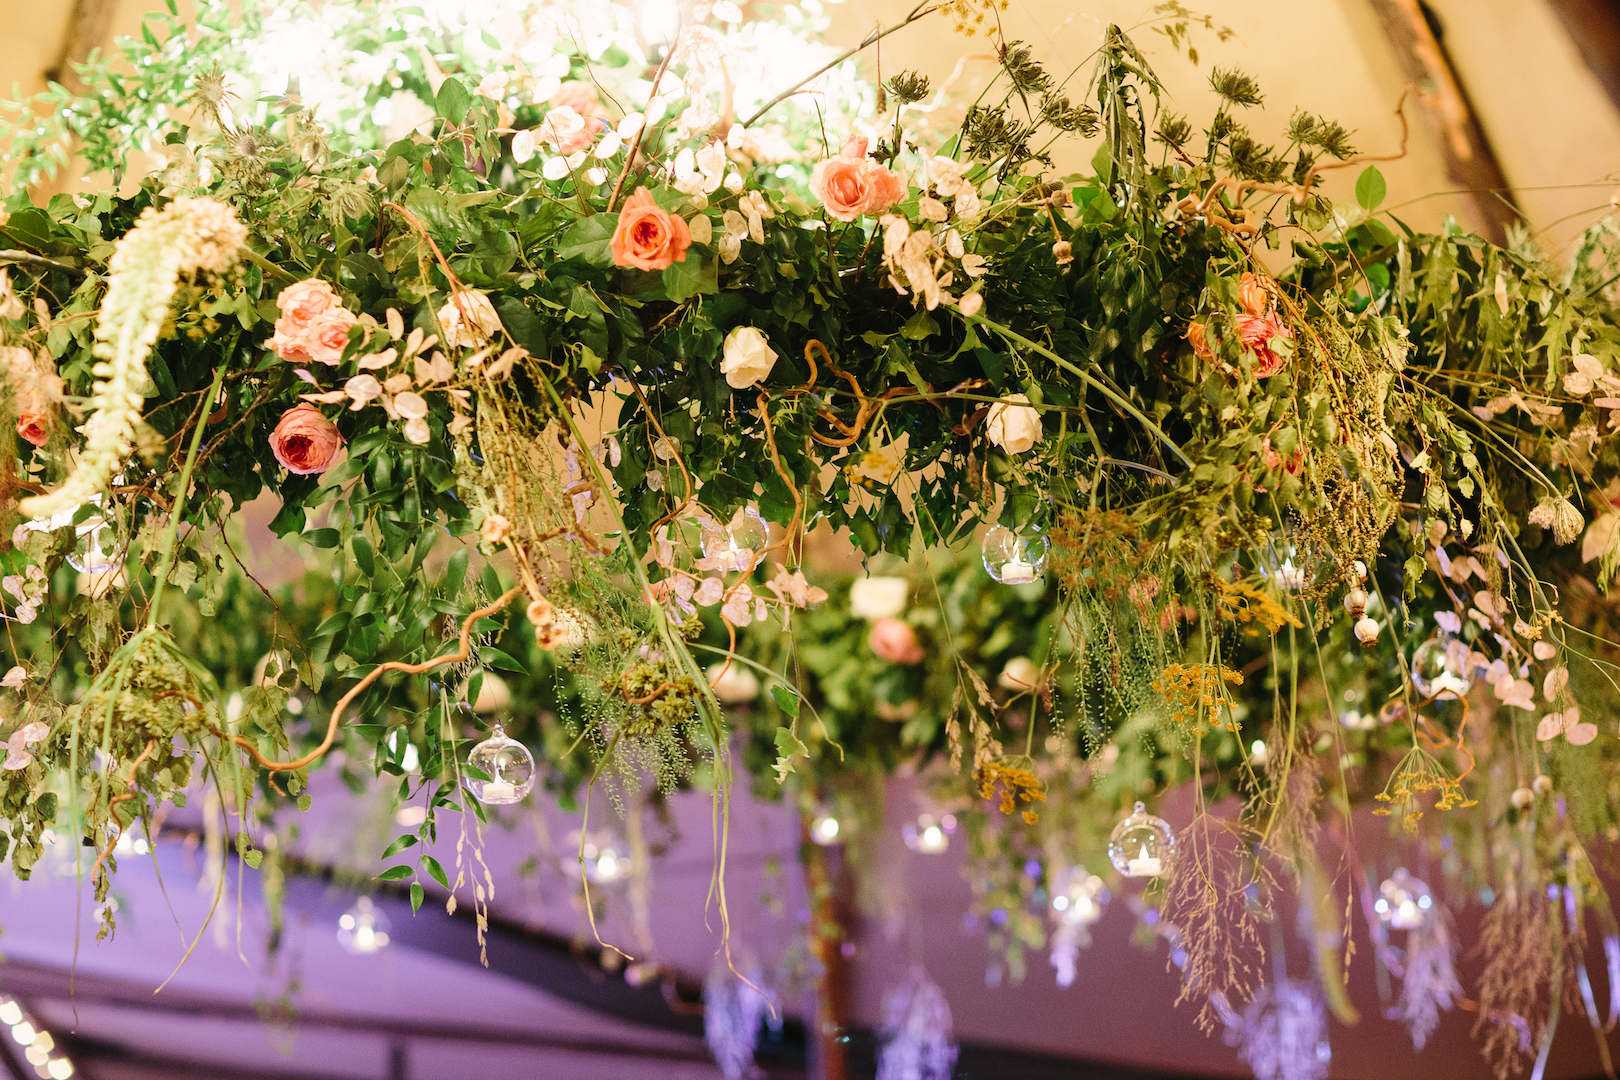 Brennan & Tom's PapaKåta Teepee Wedding, Cornwell Manor: Floral Details by Fiona Perry